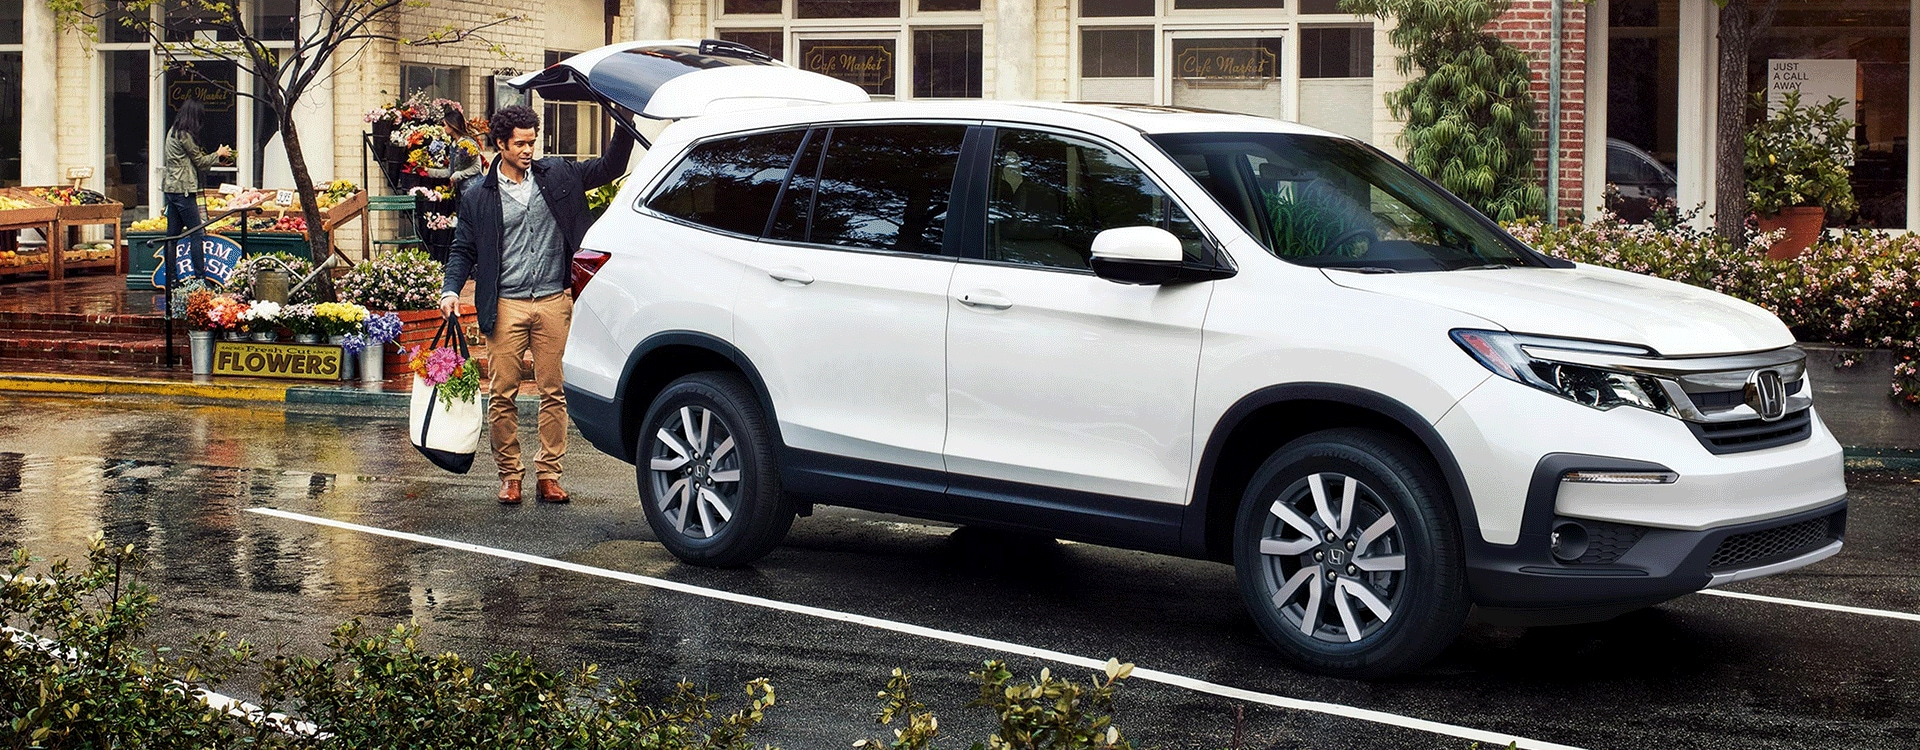 Captivating Moon Township Honda, Your Honda Dealer Near Pittsburgh, Is Thrilled About  The Production Of The 2019 Honda Pilot. This Vehicle Is Available In Five  ...